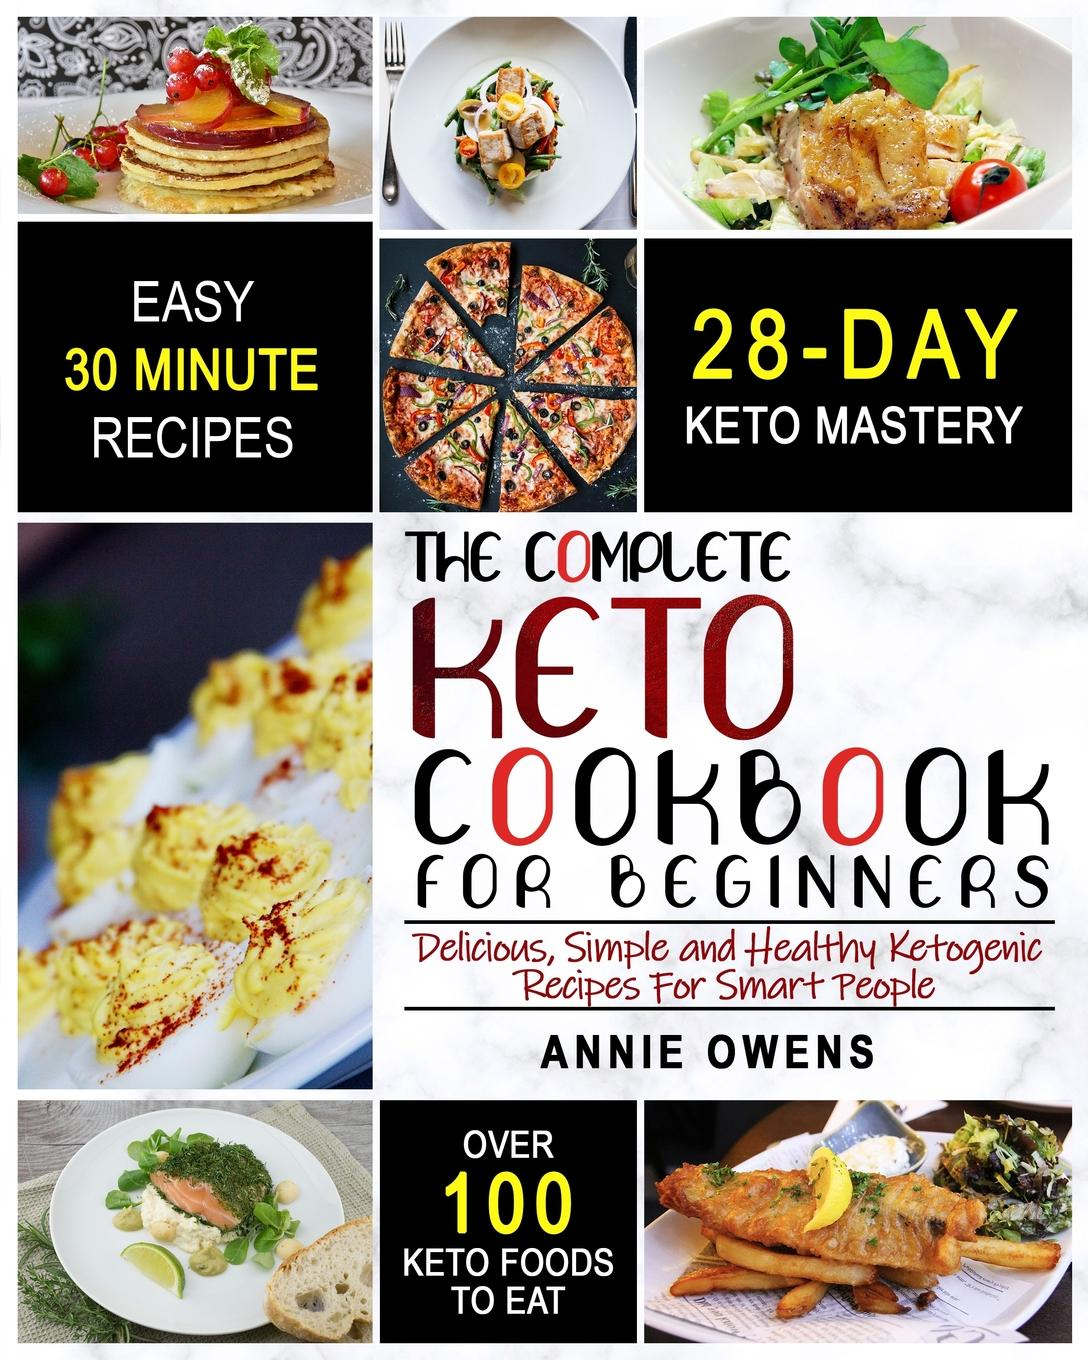 Annie Owens Keto Diet. The Complete Keto Cookbook For Beginners . Delicious, Simple and Healthy Ketogenic Recipes For Smart People dorothy stover amazing love diet